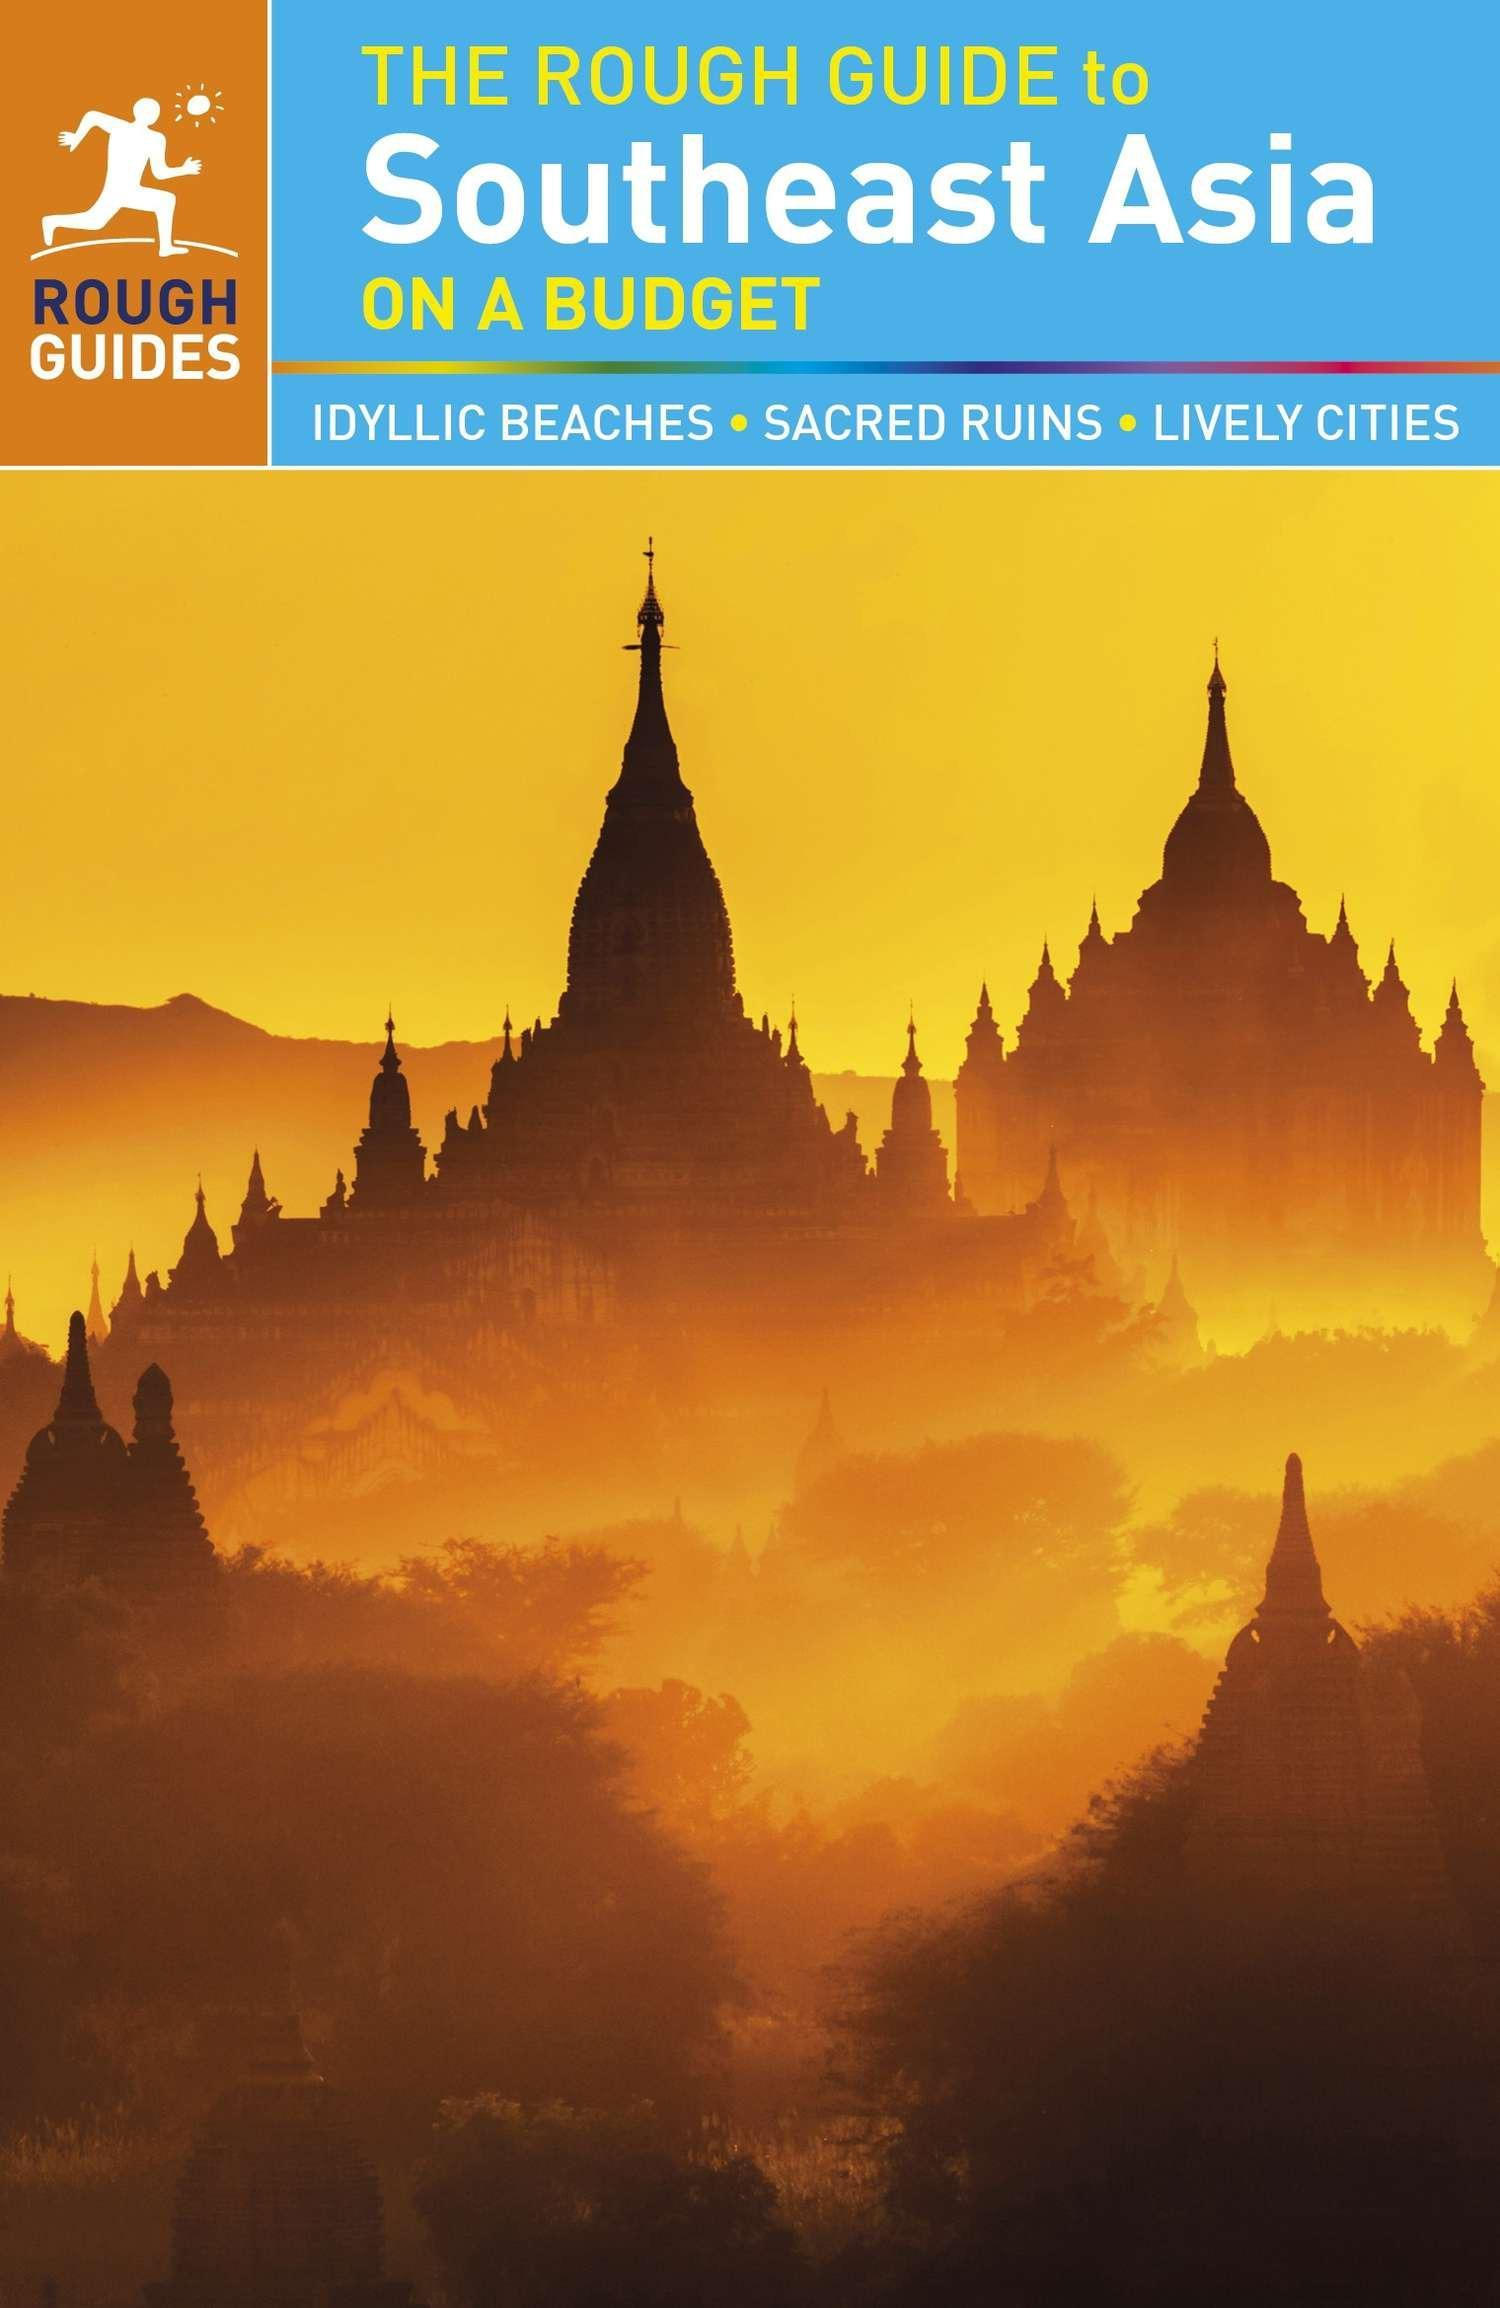 The Rough Guide to Southeast Asia on a Budget,